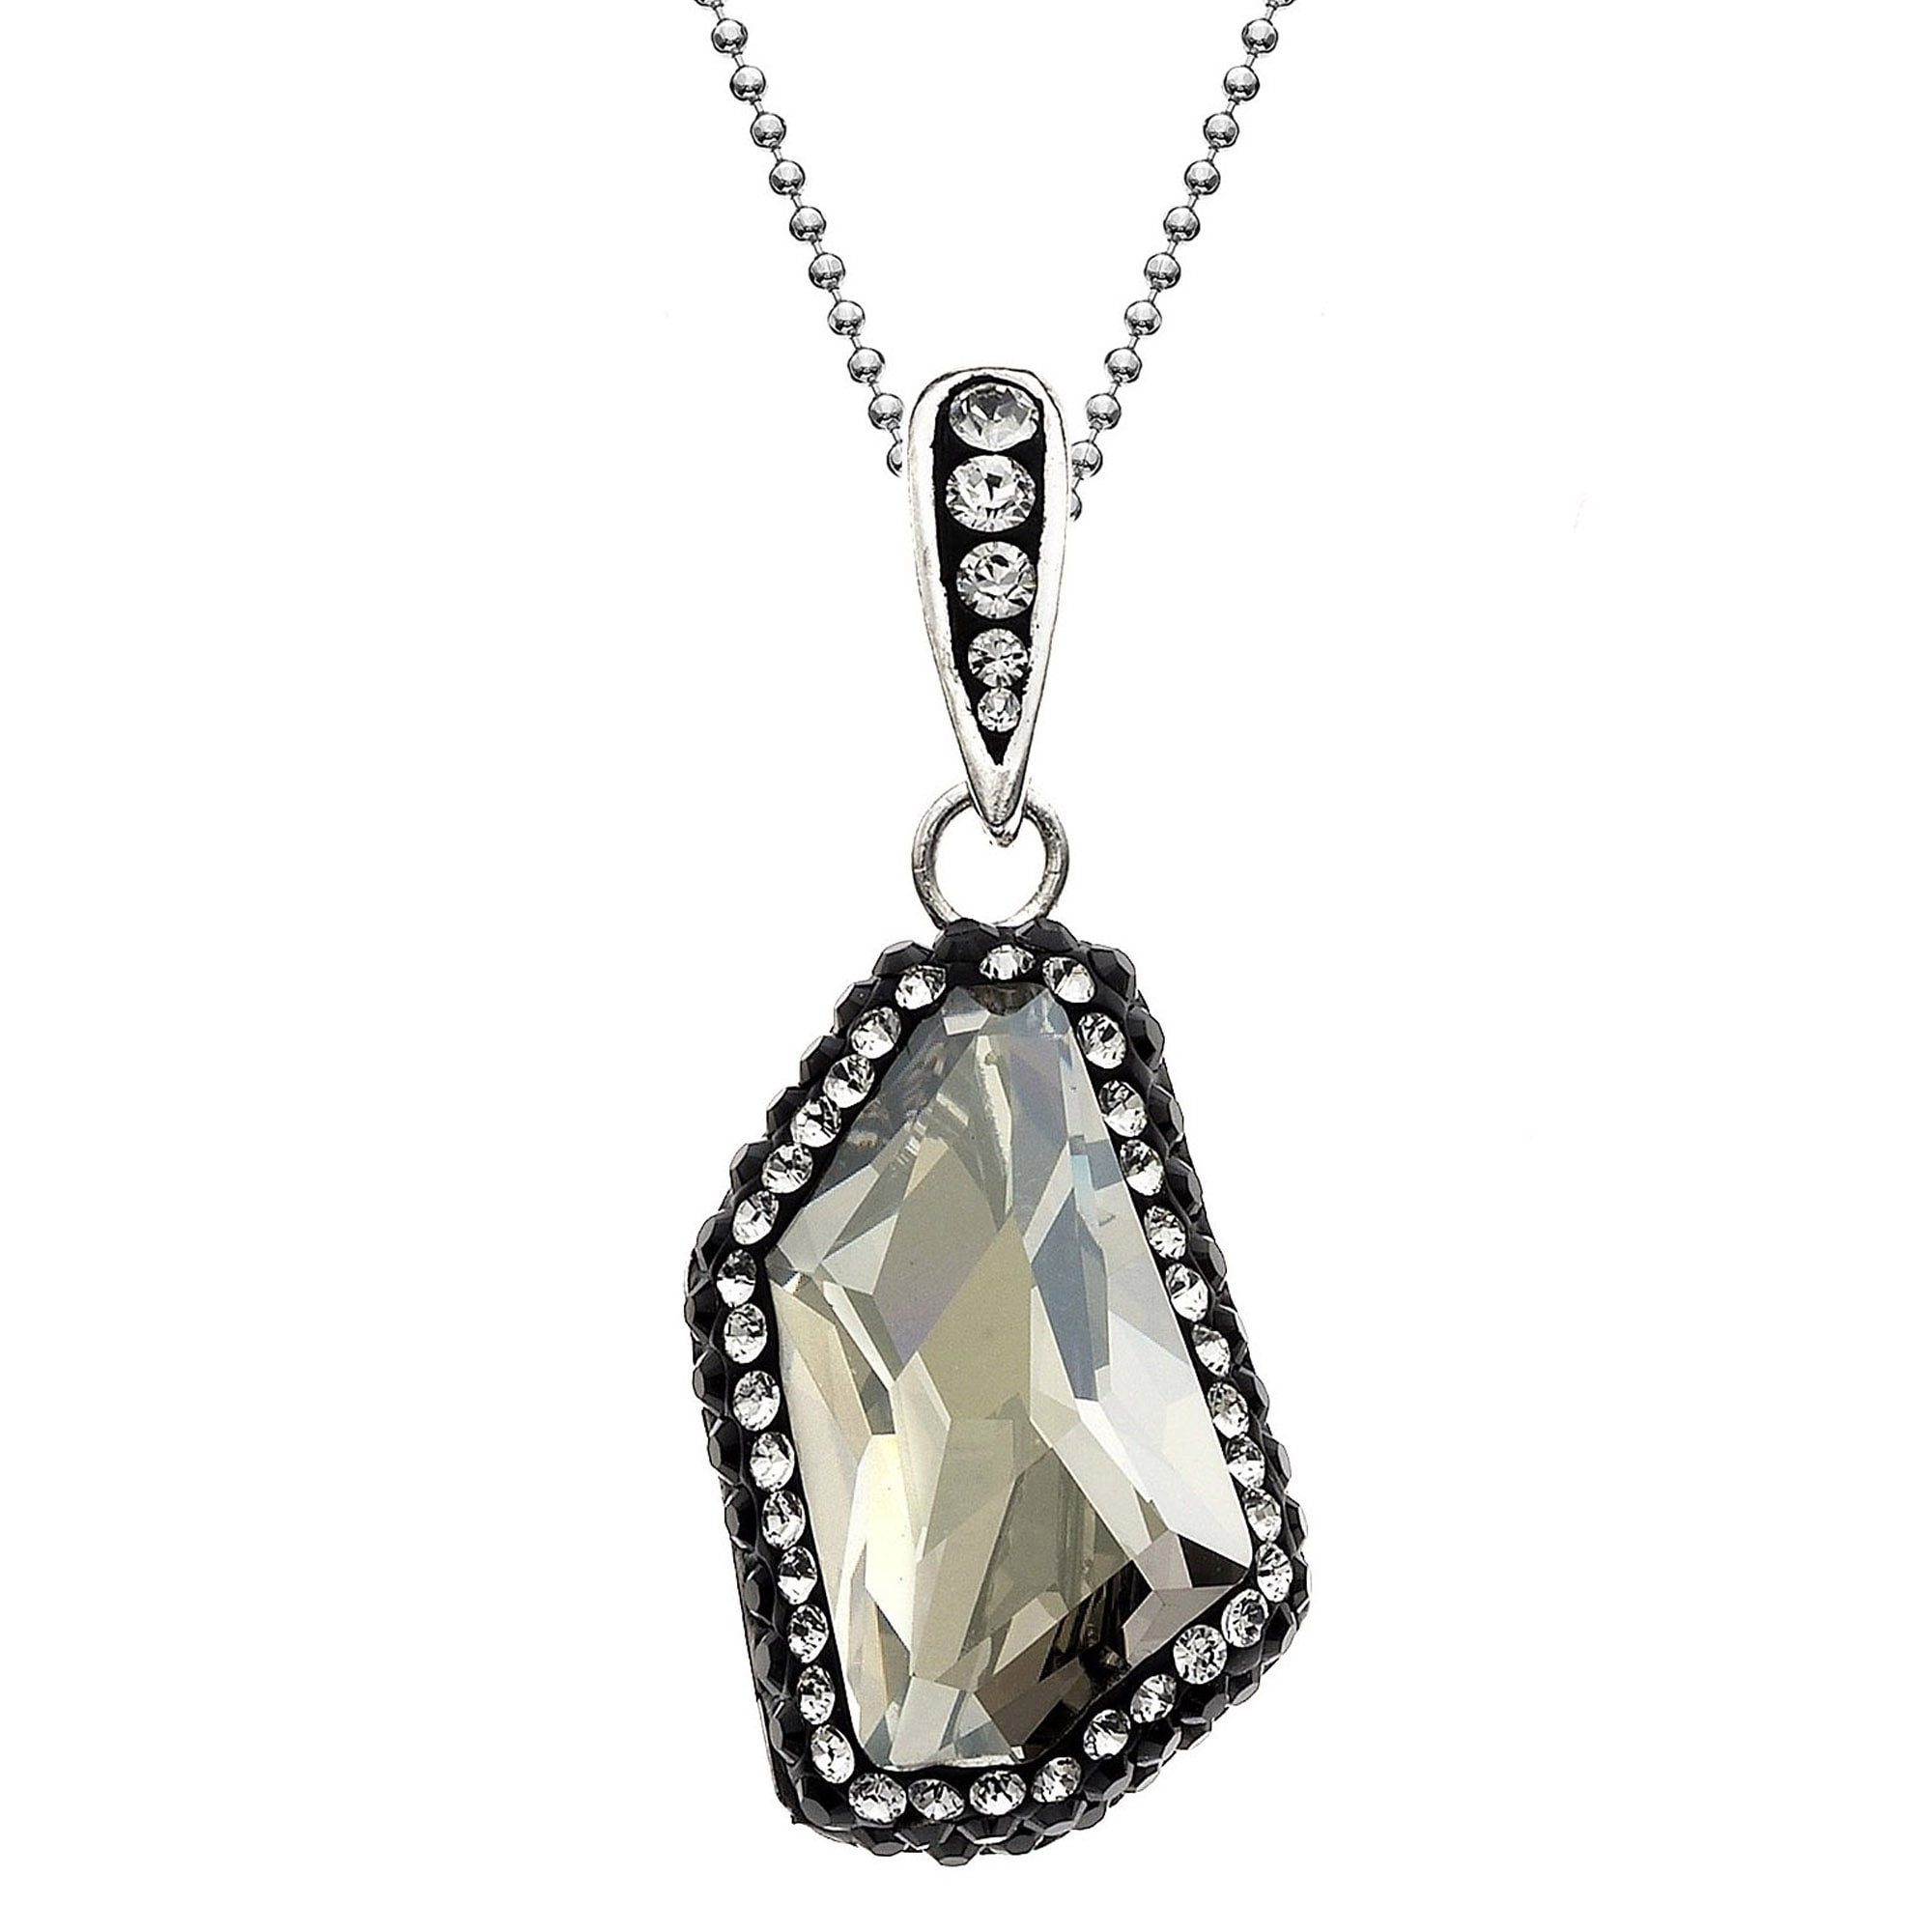 9b323c2164fb0 Isla Simone Rhodium Plated Sterling Silver Pendant Necklace, Made with  Swarovski Crystal Elements